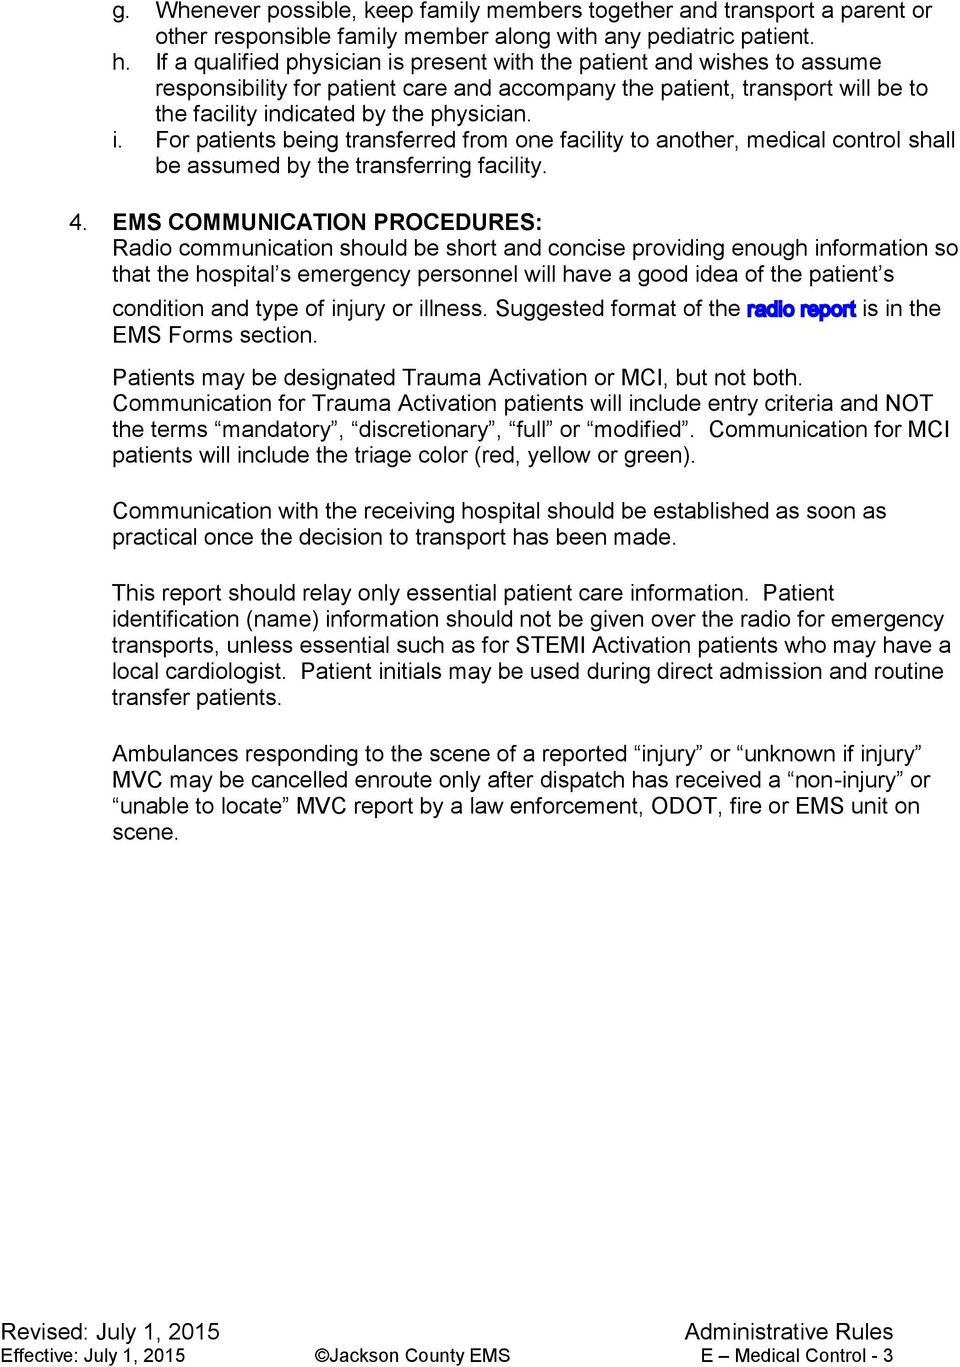 Jackson County EMS Standing Orders - PDF